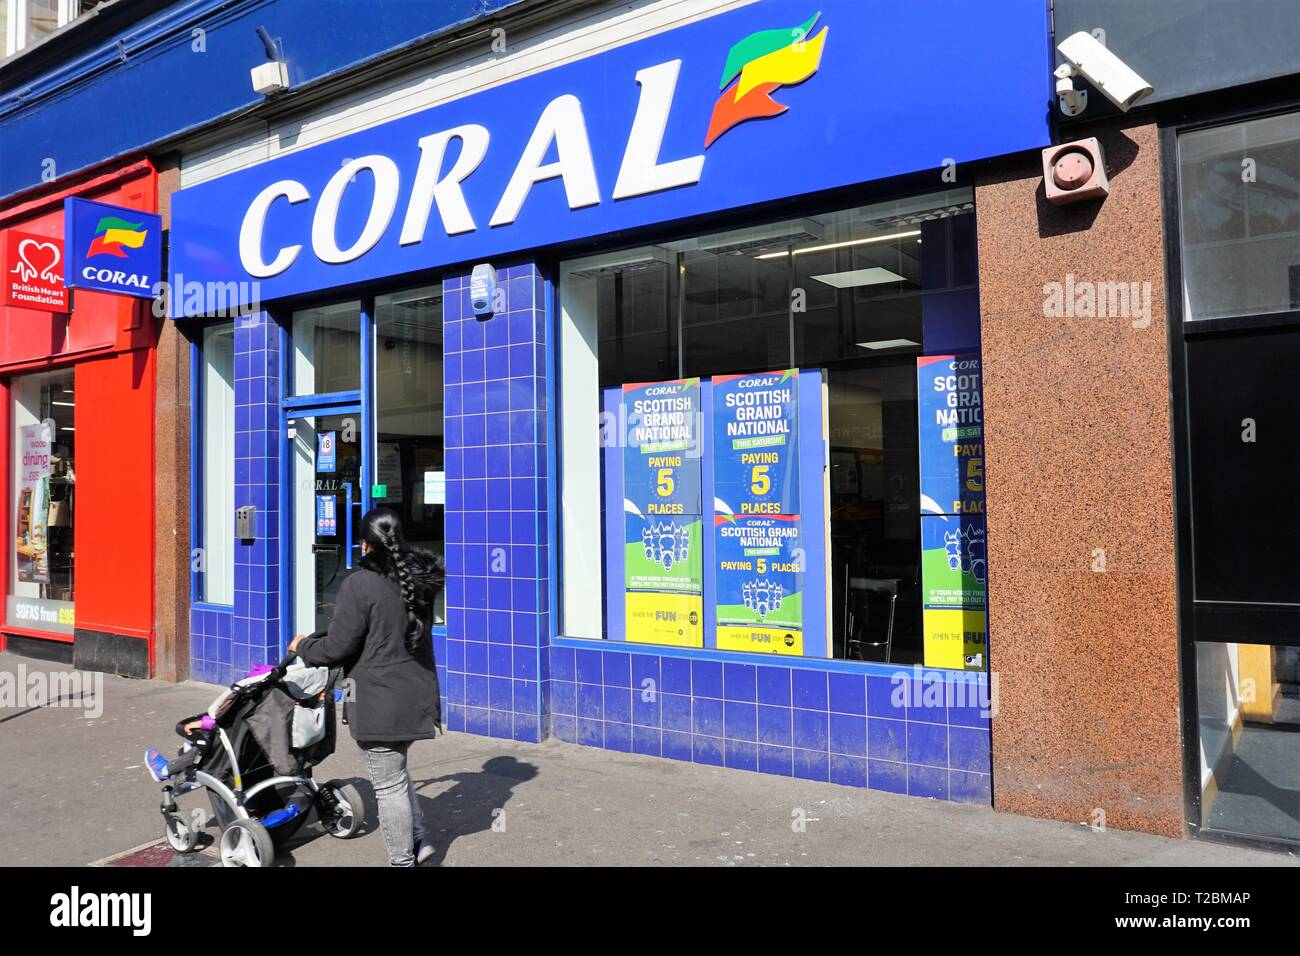 Coral betting shop redditch cinema horse betting rules each way lucky